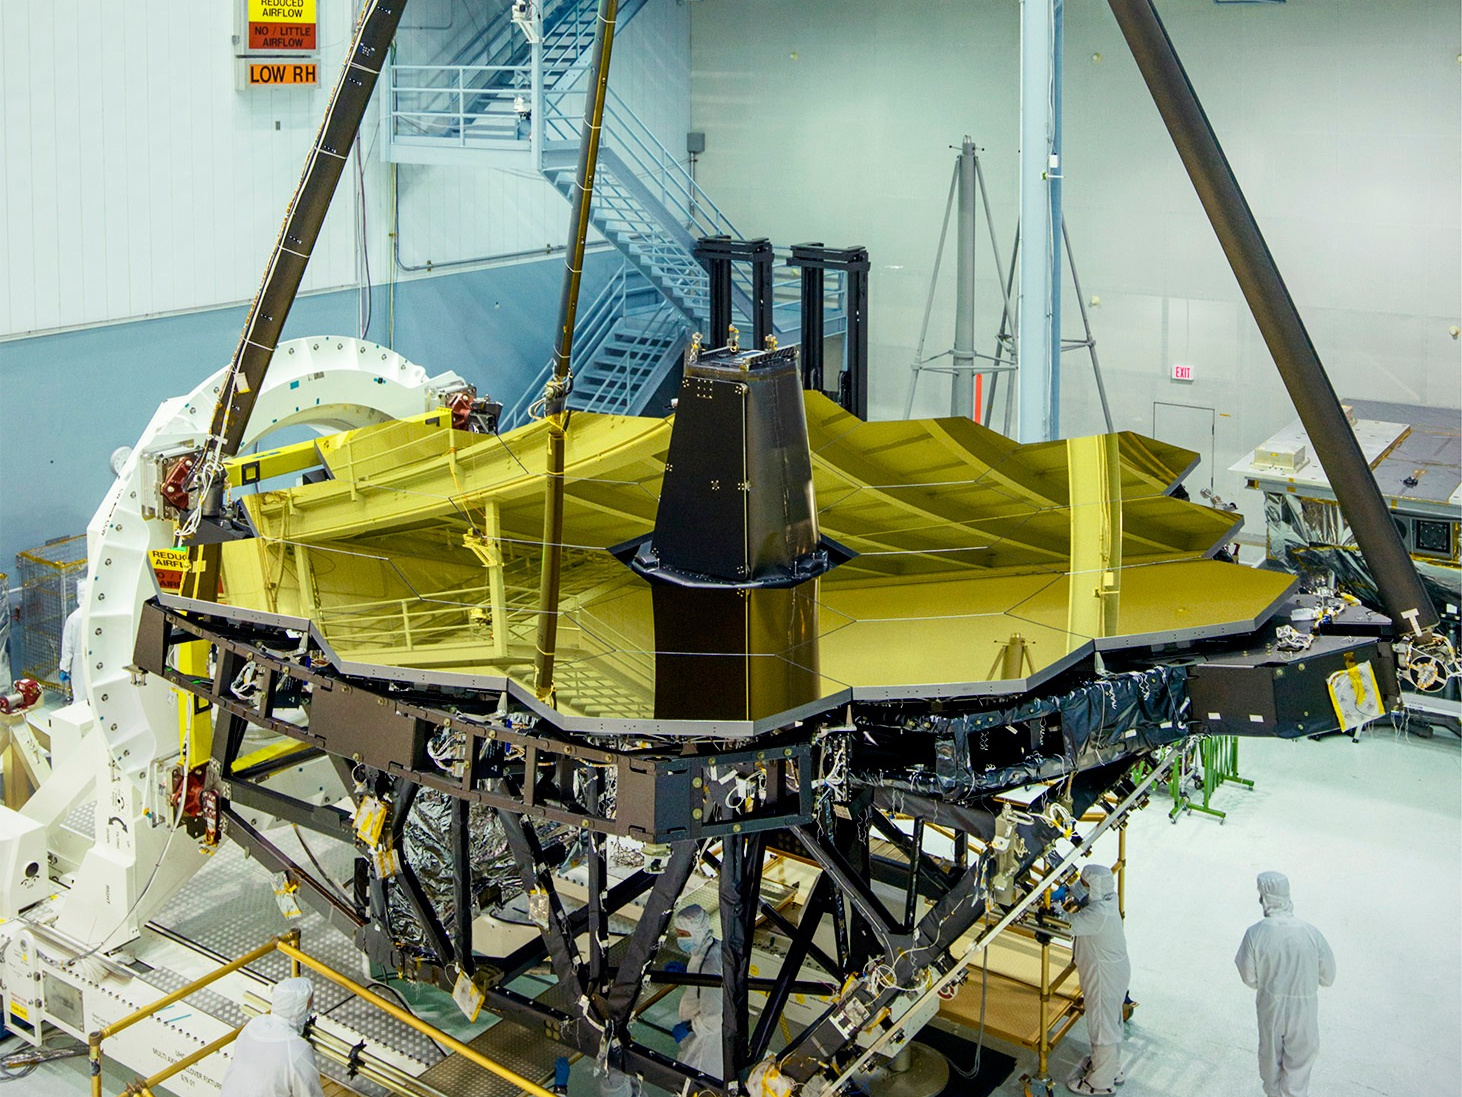 Standing tall and glimmering gold inside NASA's Goddard Space Flight Center's clean room in Greenbelt, Maryland is the James Webb Space Telescope primary mirror. With an aperture of 6.5 metres, it will be the largest yet sent into space. Image credits: NASA/Chris Gunn.